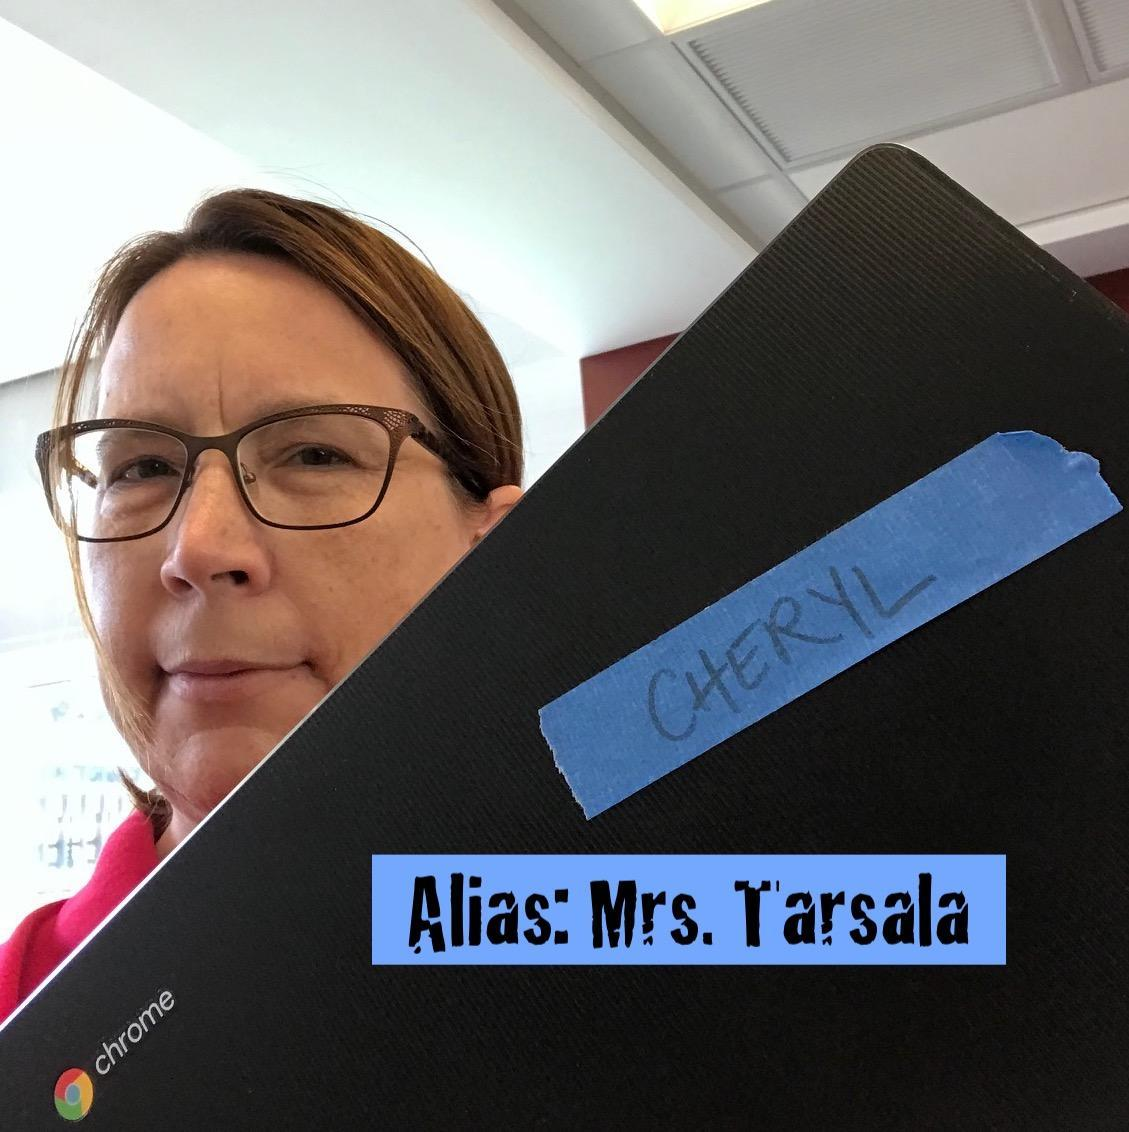 A picture of Mrs. Tarsala hiding behind her Chromebook